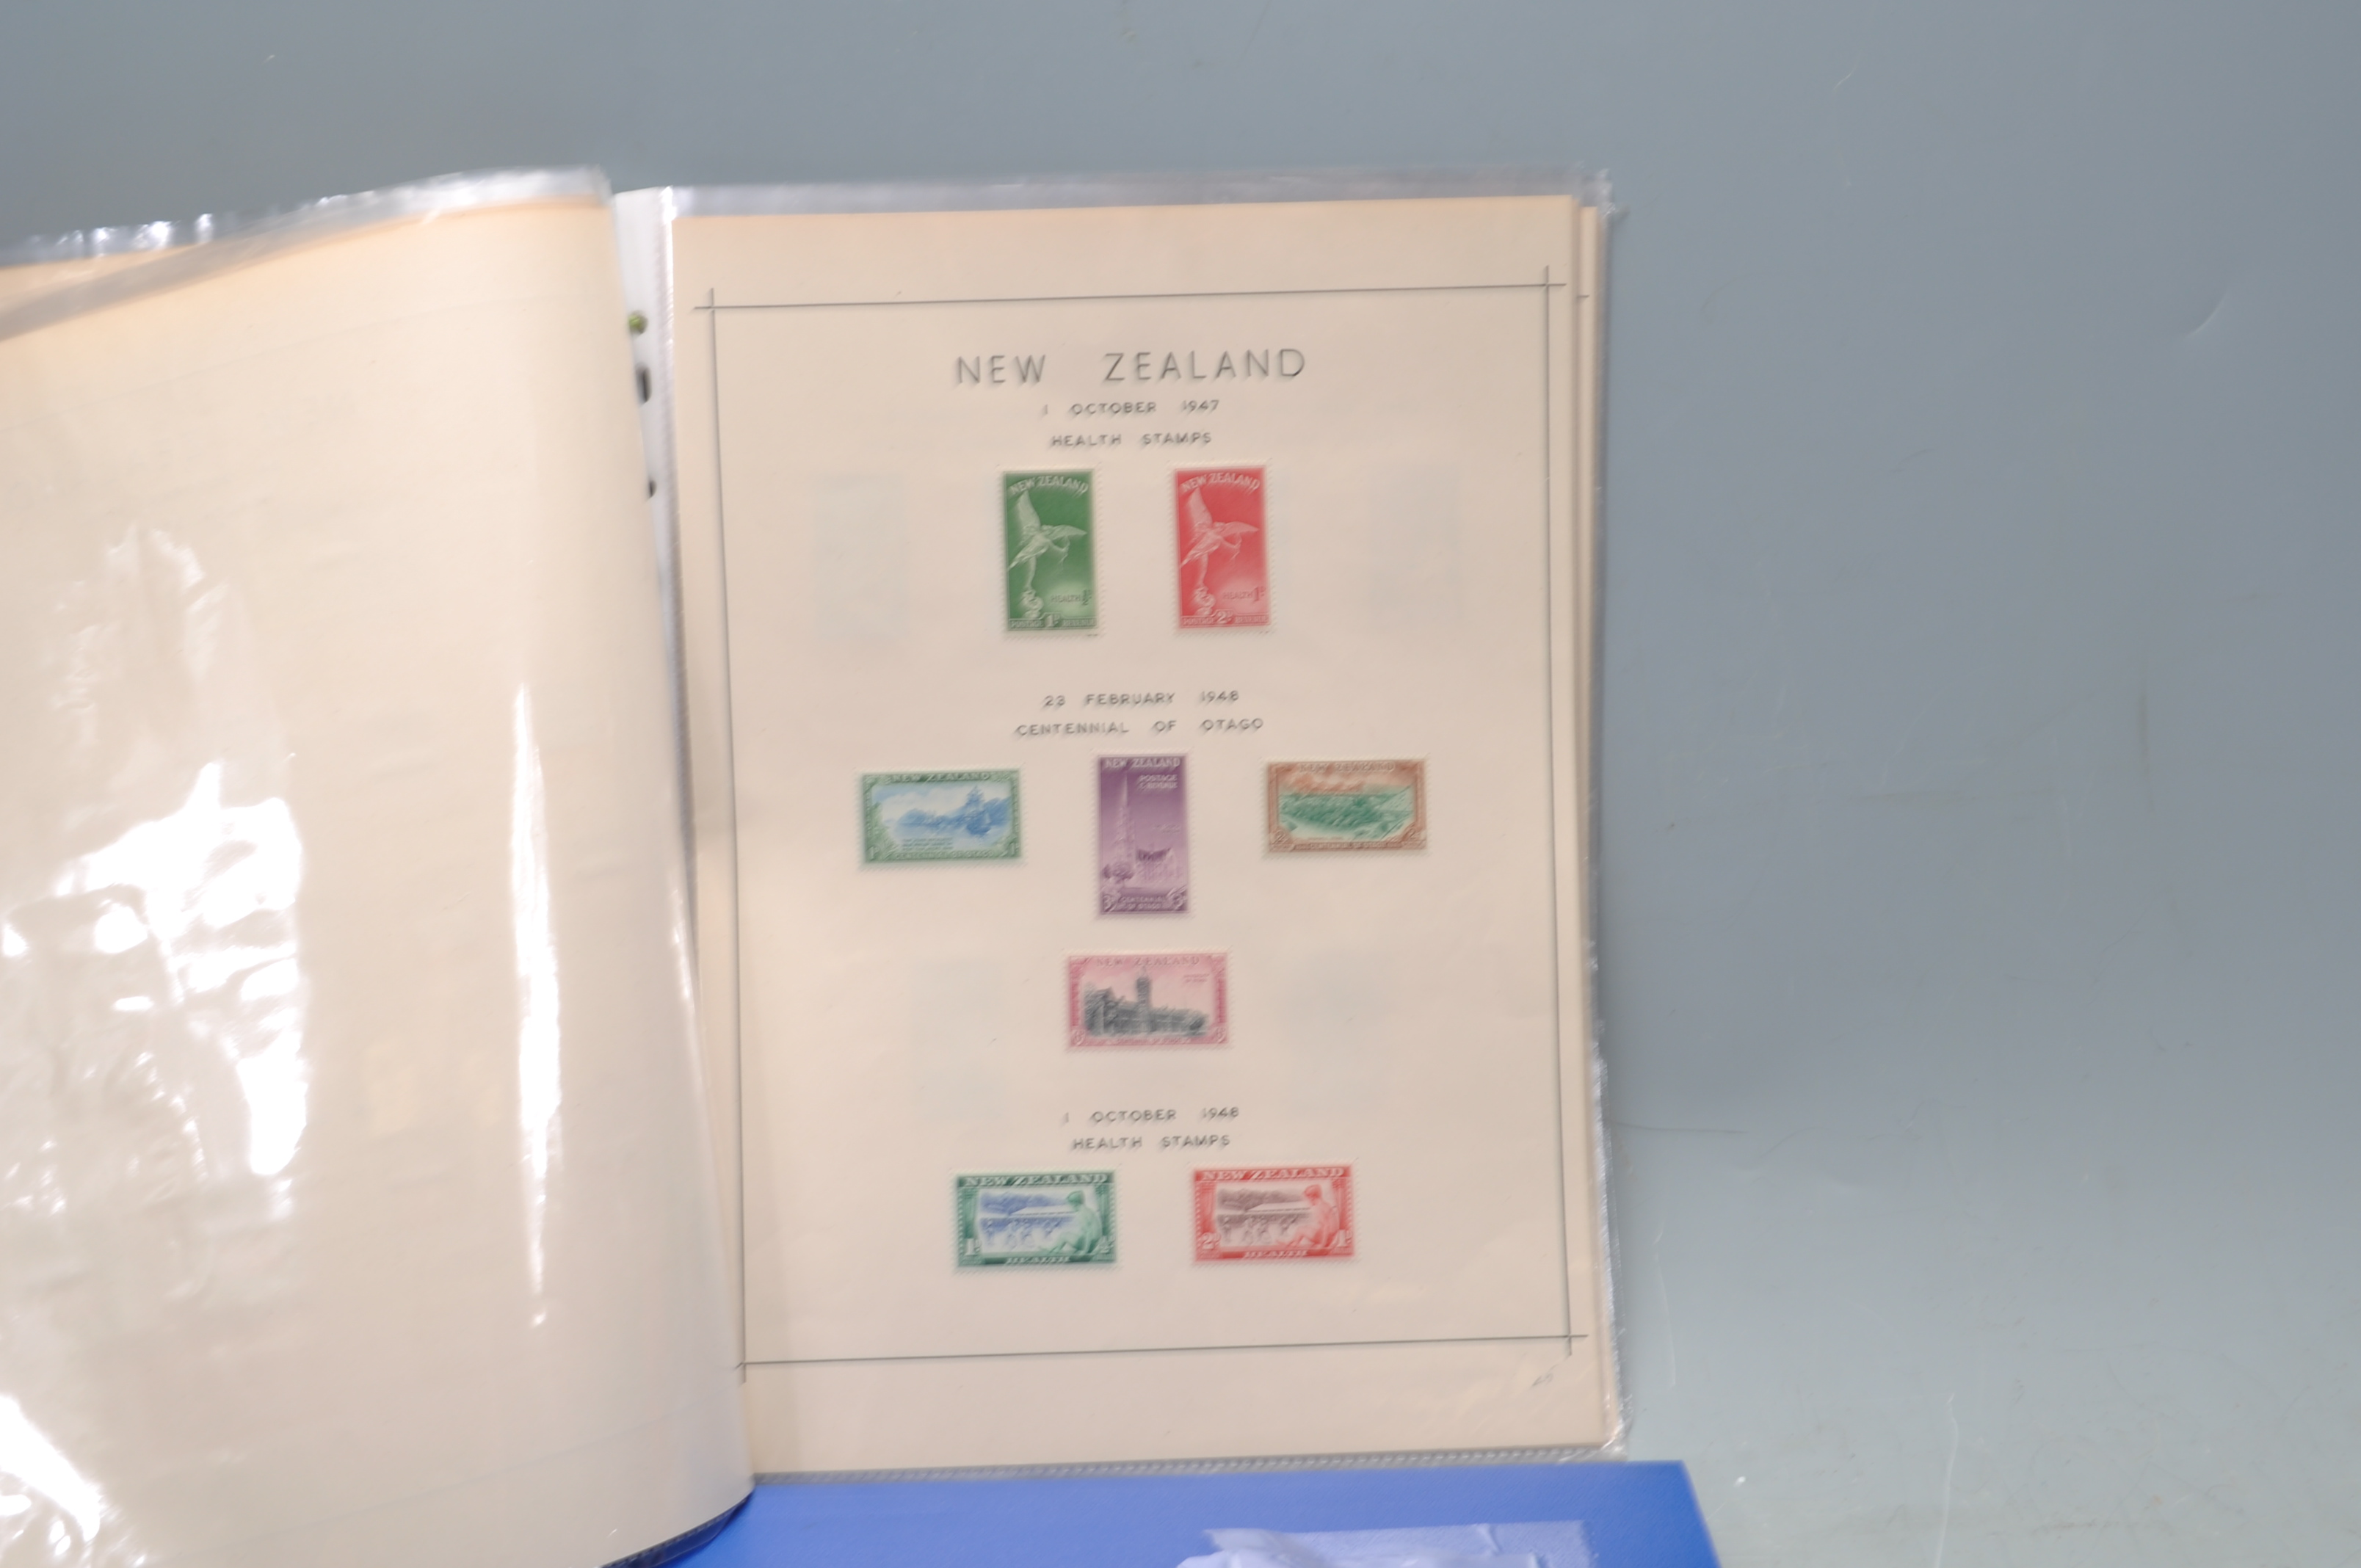 NEW ZEALAND MINT COLLECTION OF POSTAGE STAMPS - Image 5 of 8